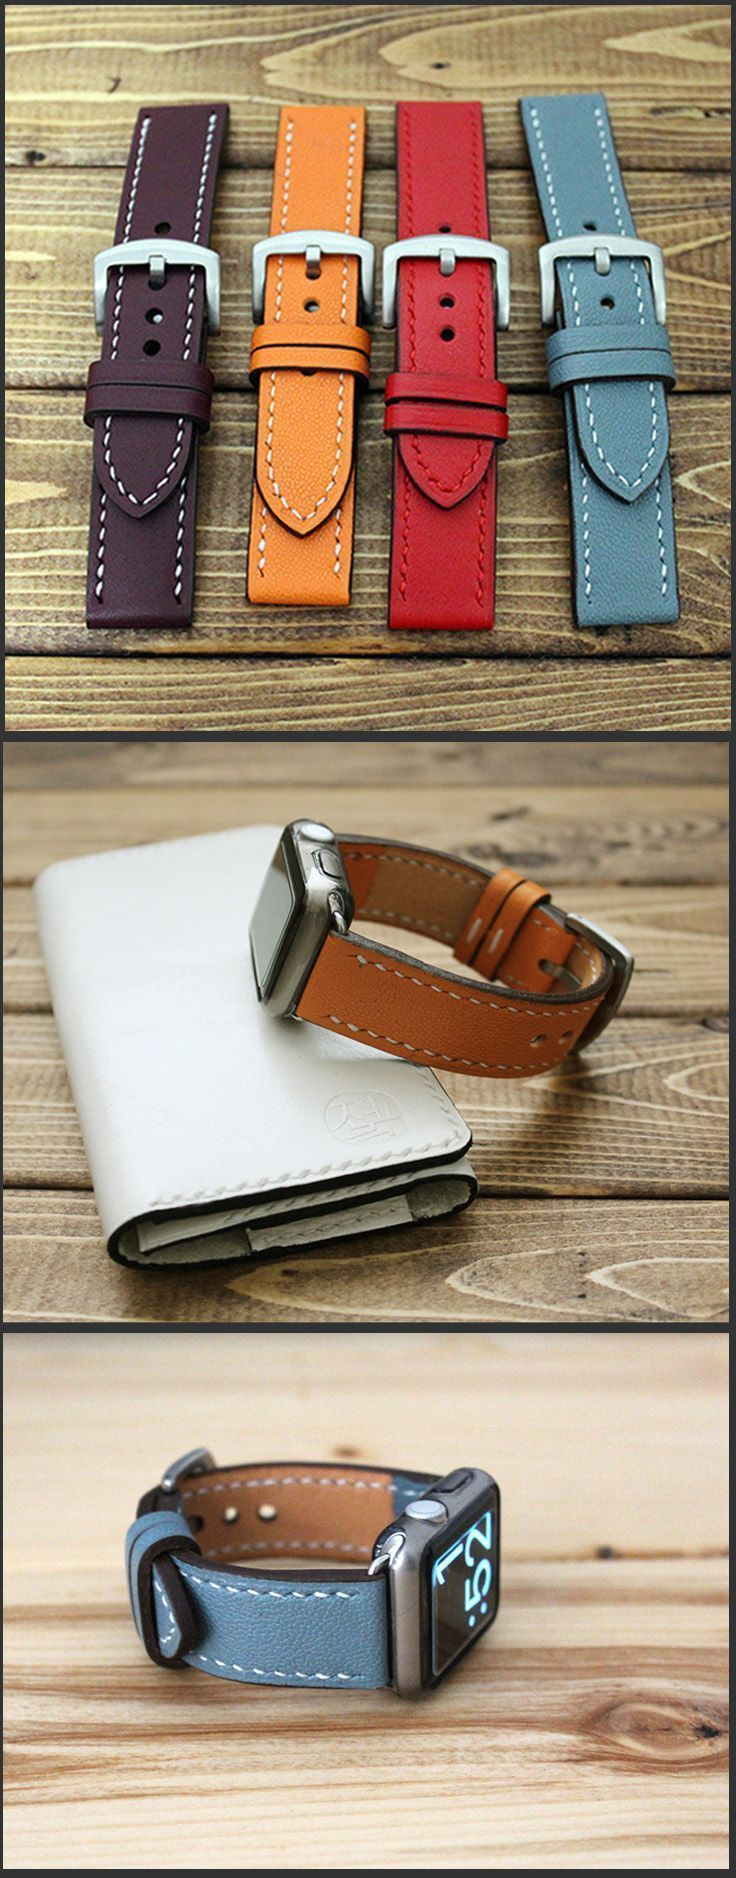 Apple Watch strap band in vegetable tanned Italian leather and caviar pattern embossed calf leather. Gorgeous color! Apple Watch Band, Hand Stitched Apple Watch strap. iWatch 38mm, iWatch 42mm replacement strap, Made with  All 4 lugs, gold, rose gold, bla